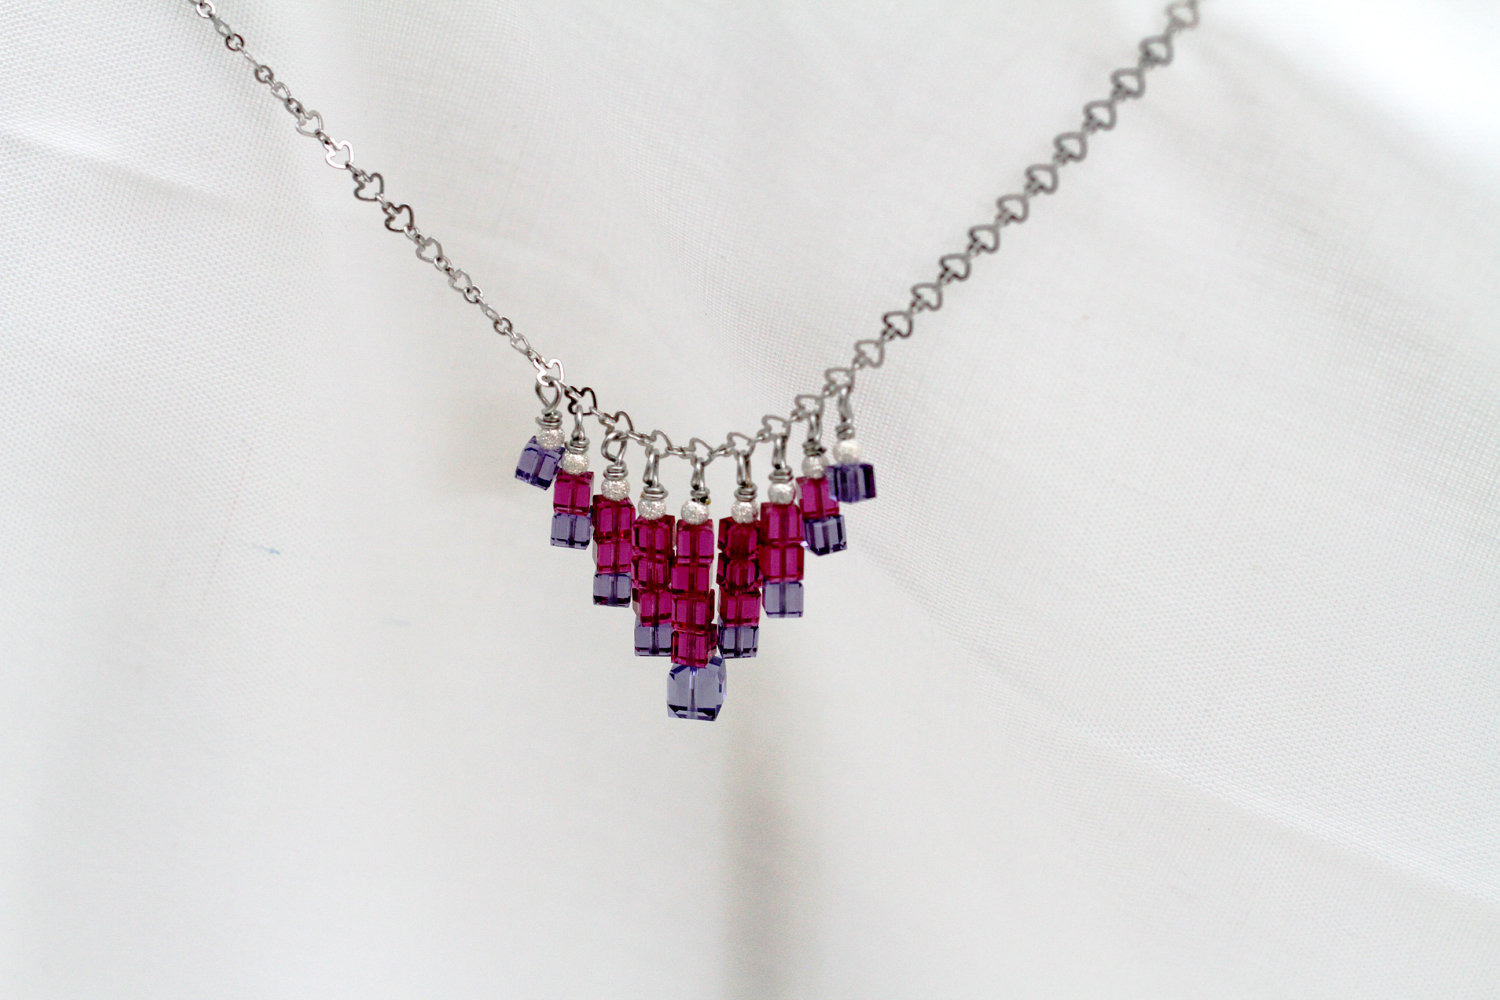 Primary image for Swarovski crystal cube necklace, sterling silver beads, silver plated chain